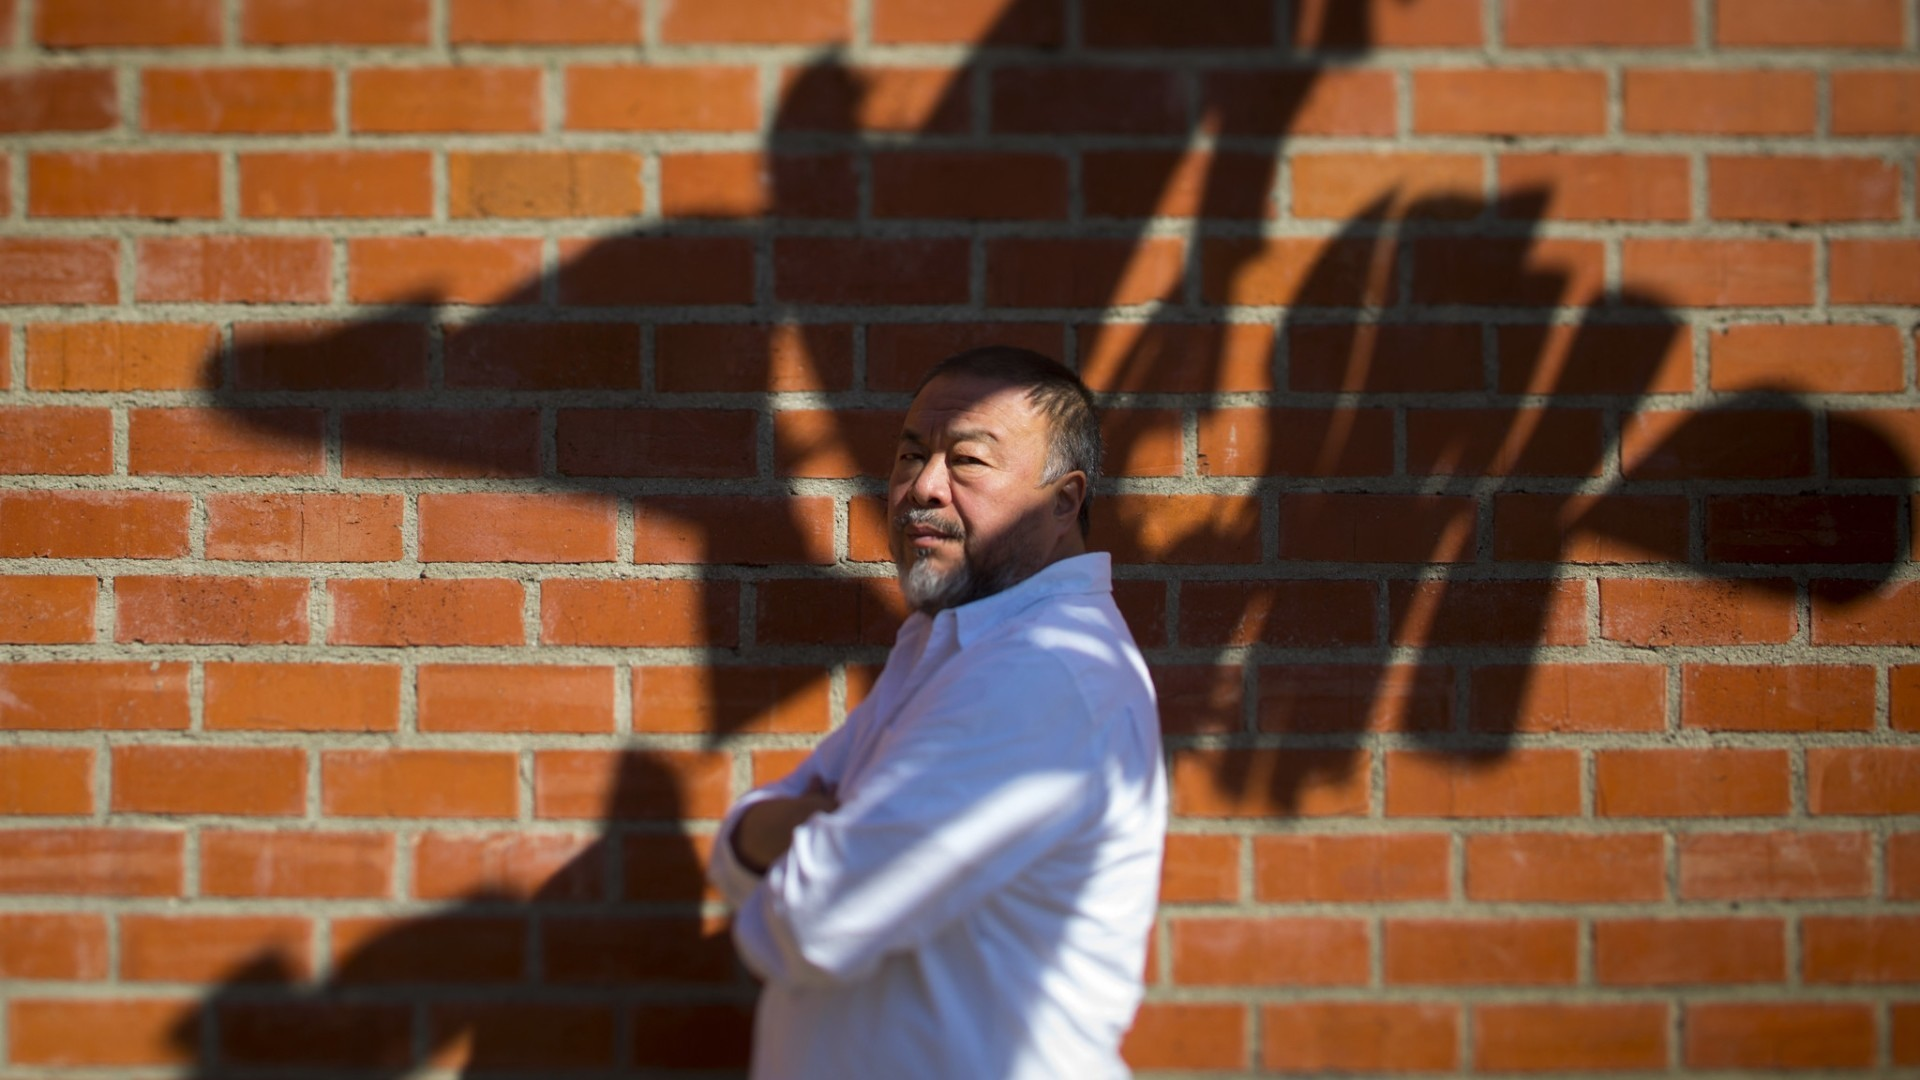 L.A. Times photo shoot with artist Ai Weiwei